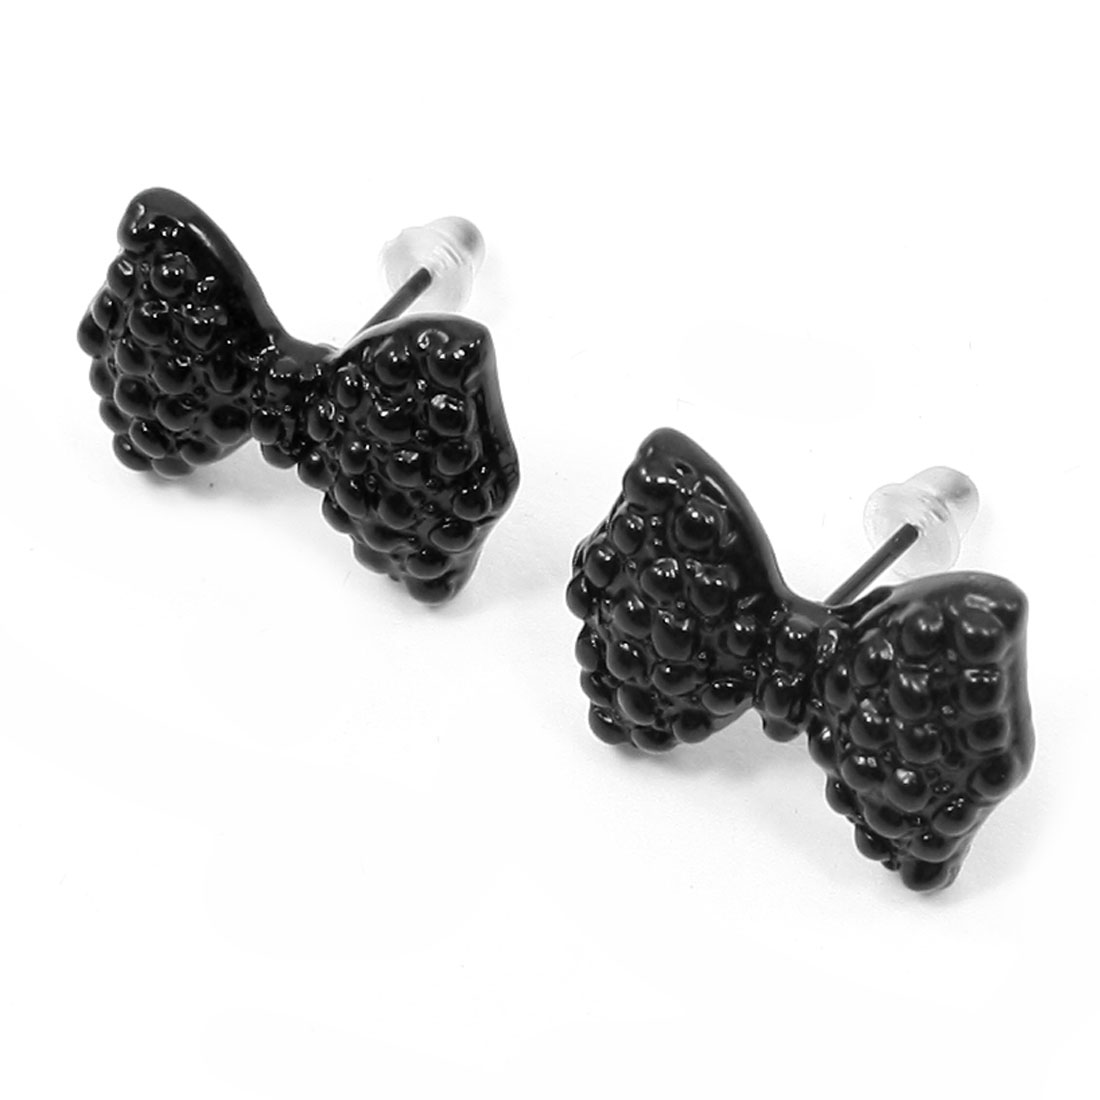 Lady Ear Ornament Black Bowknot Design Plastic Stud Earrings Pair